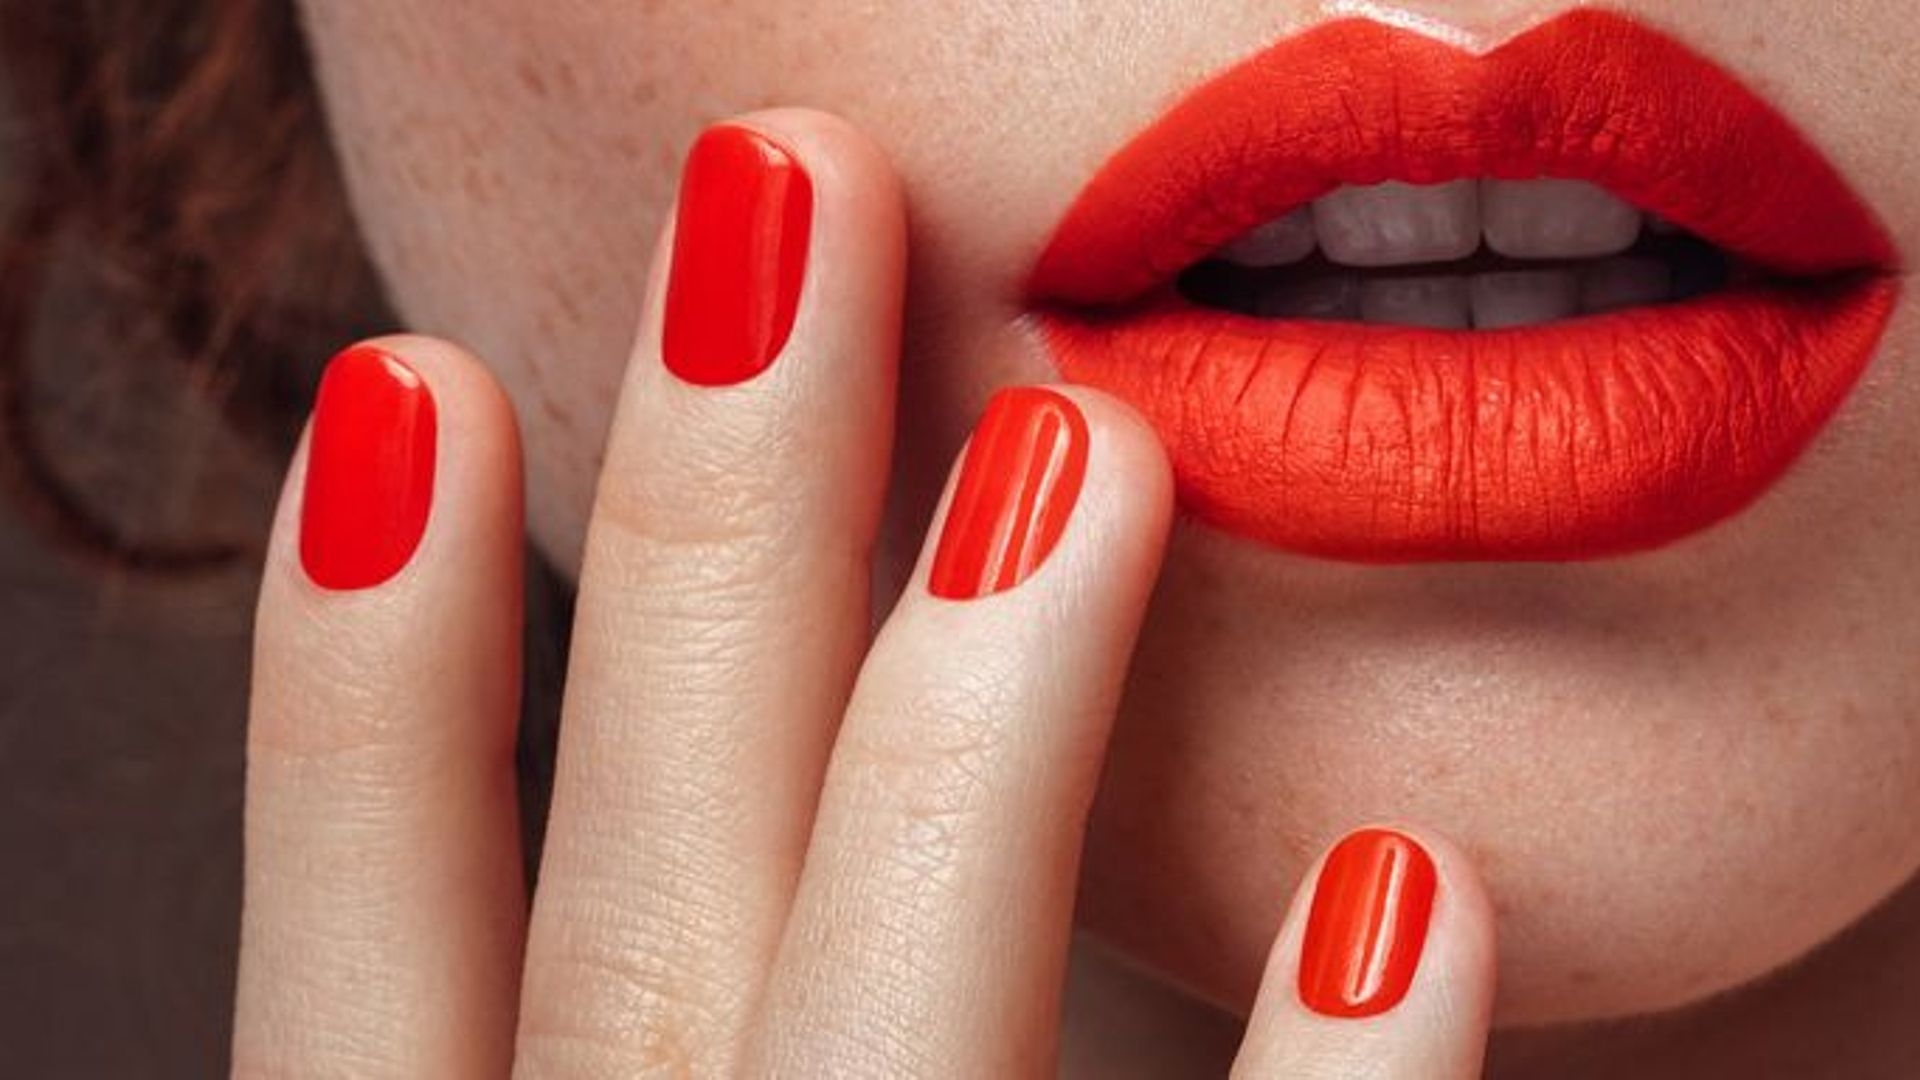 Shellac Nails Versus Gel Manicures, Explained